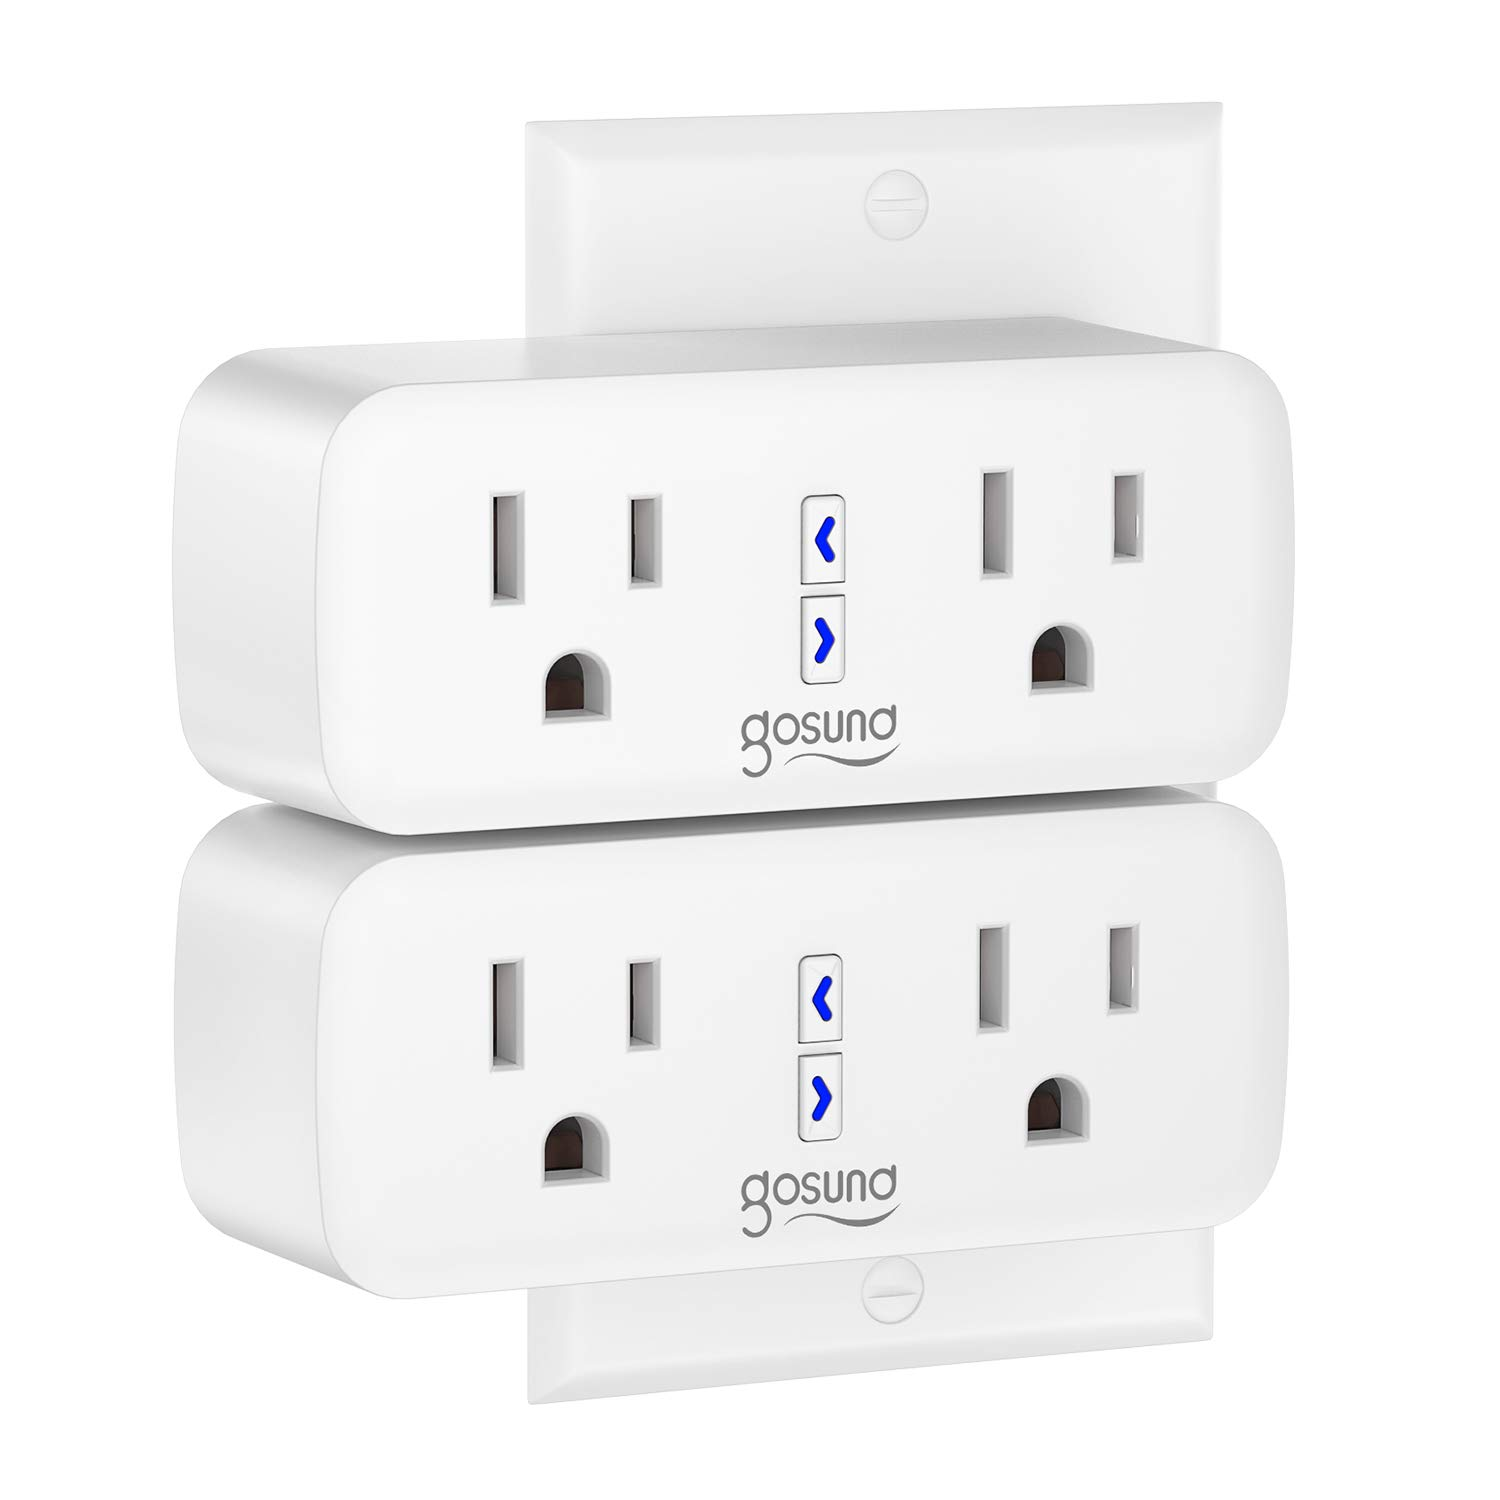 Smart Plug Gosund WiFi Outlet Extender Dual Socket Plugs Works with Alexa Google Home, Schedule and Timer, Control Independently or Together, 10A, No Hub Required, FCC Listed (2 Pack): Industrial & Scientific